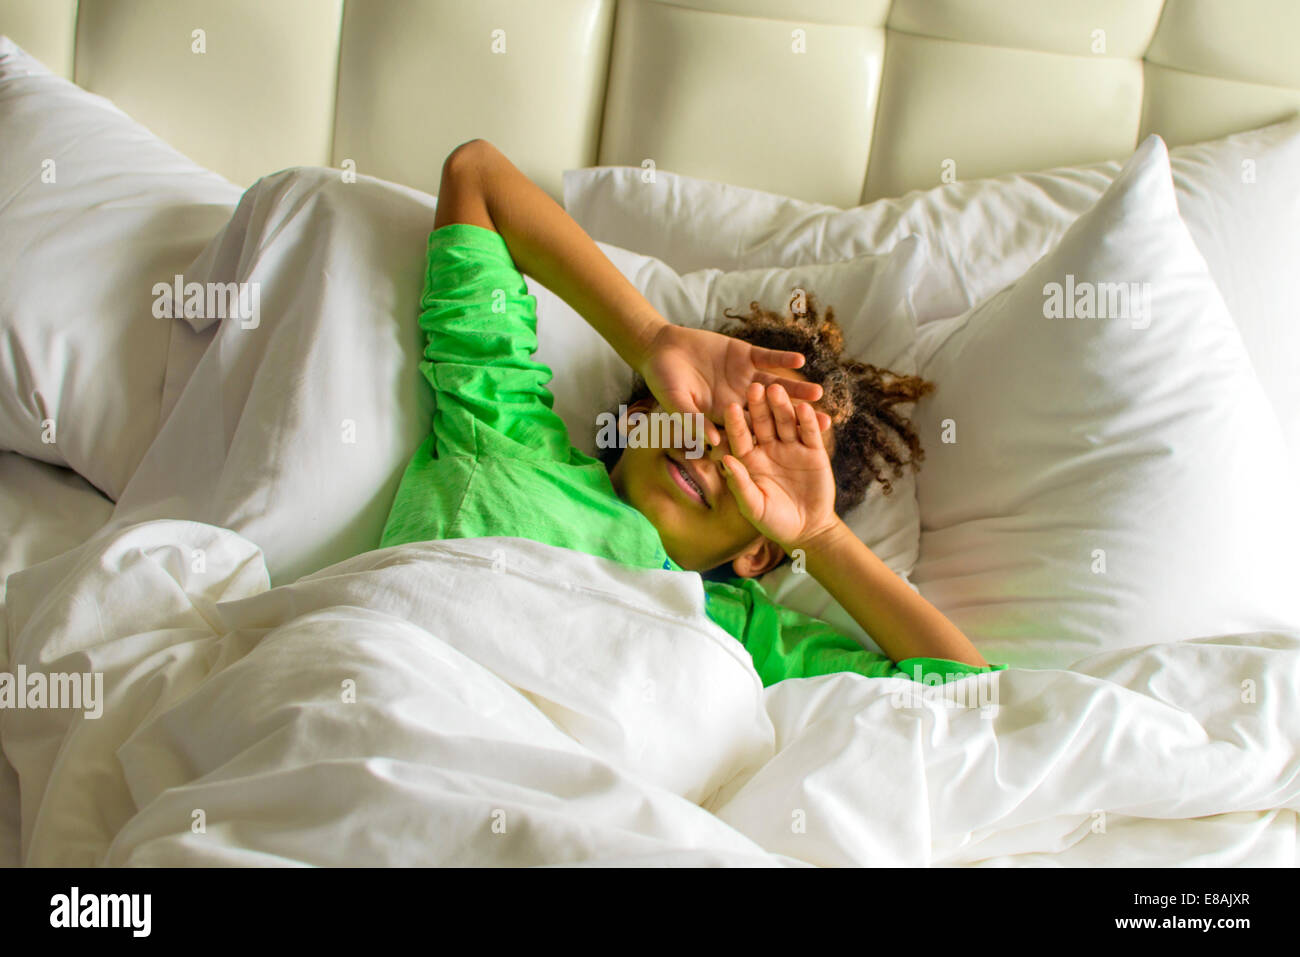 Sleepy boy lying in bed shielding face with hands - Stock Image